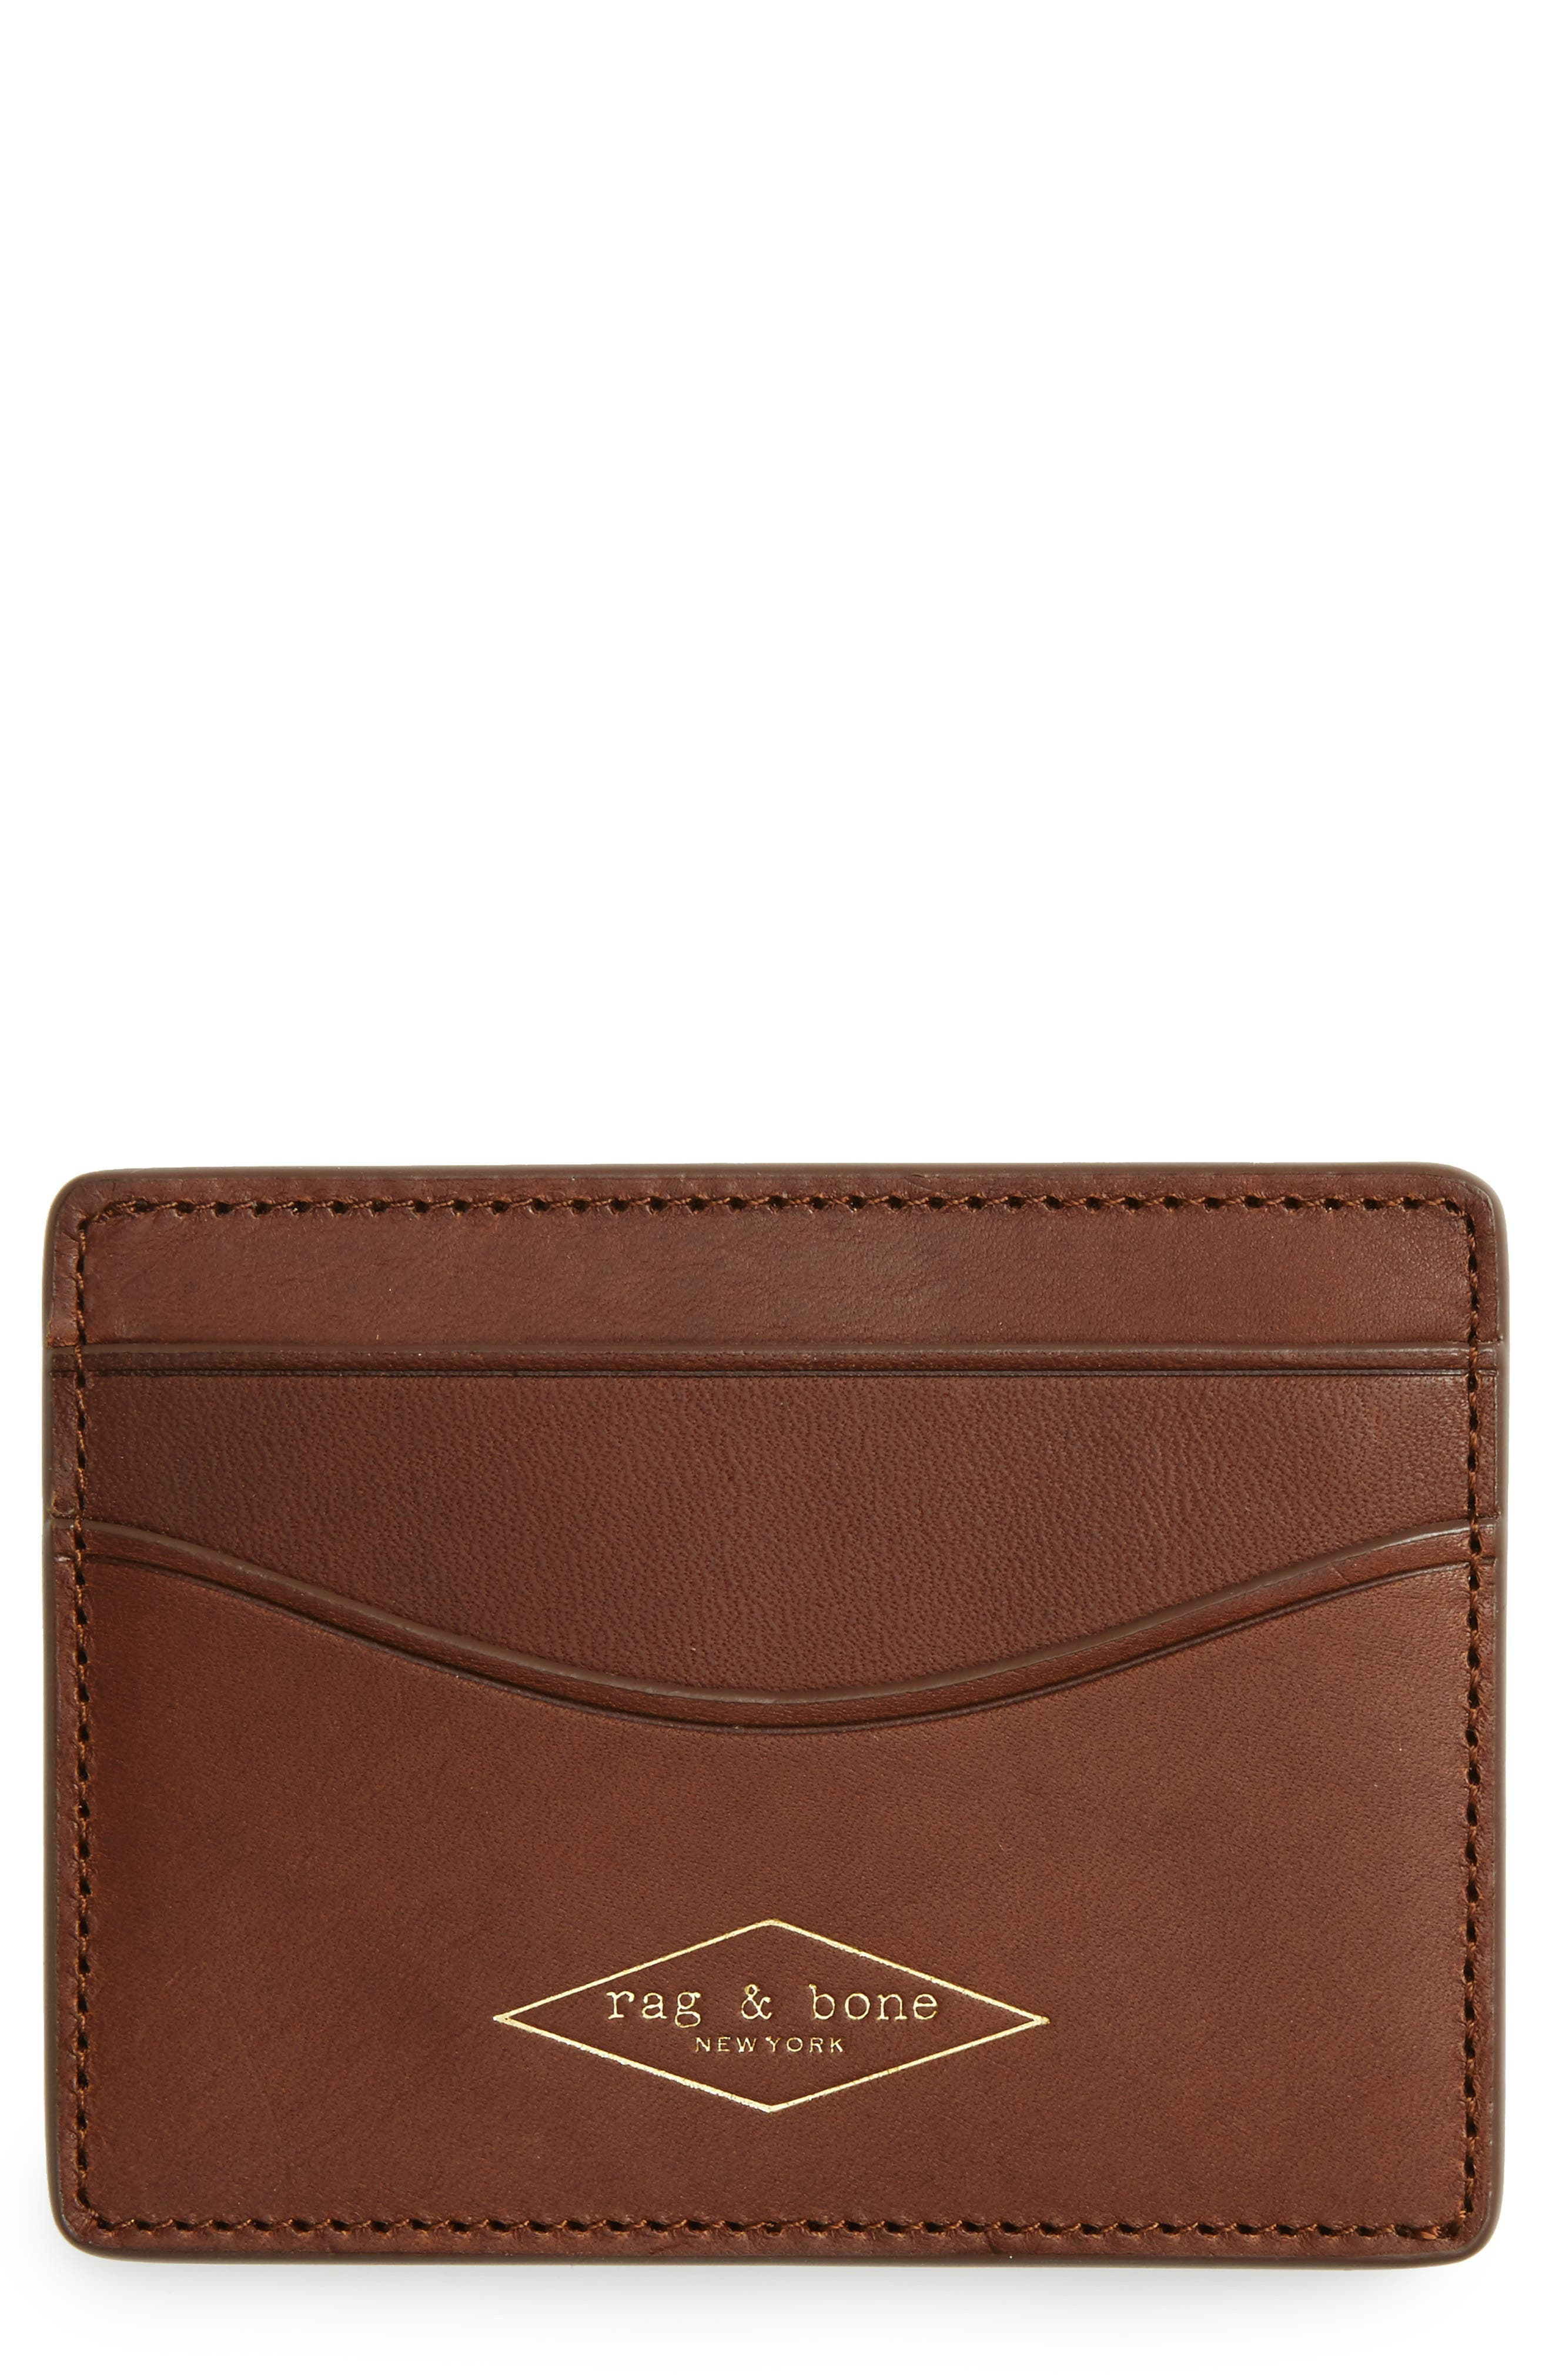 Leather Card Case,                             Main thumbnail 1, color,                             201